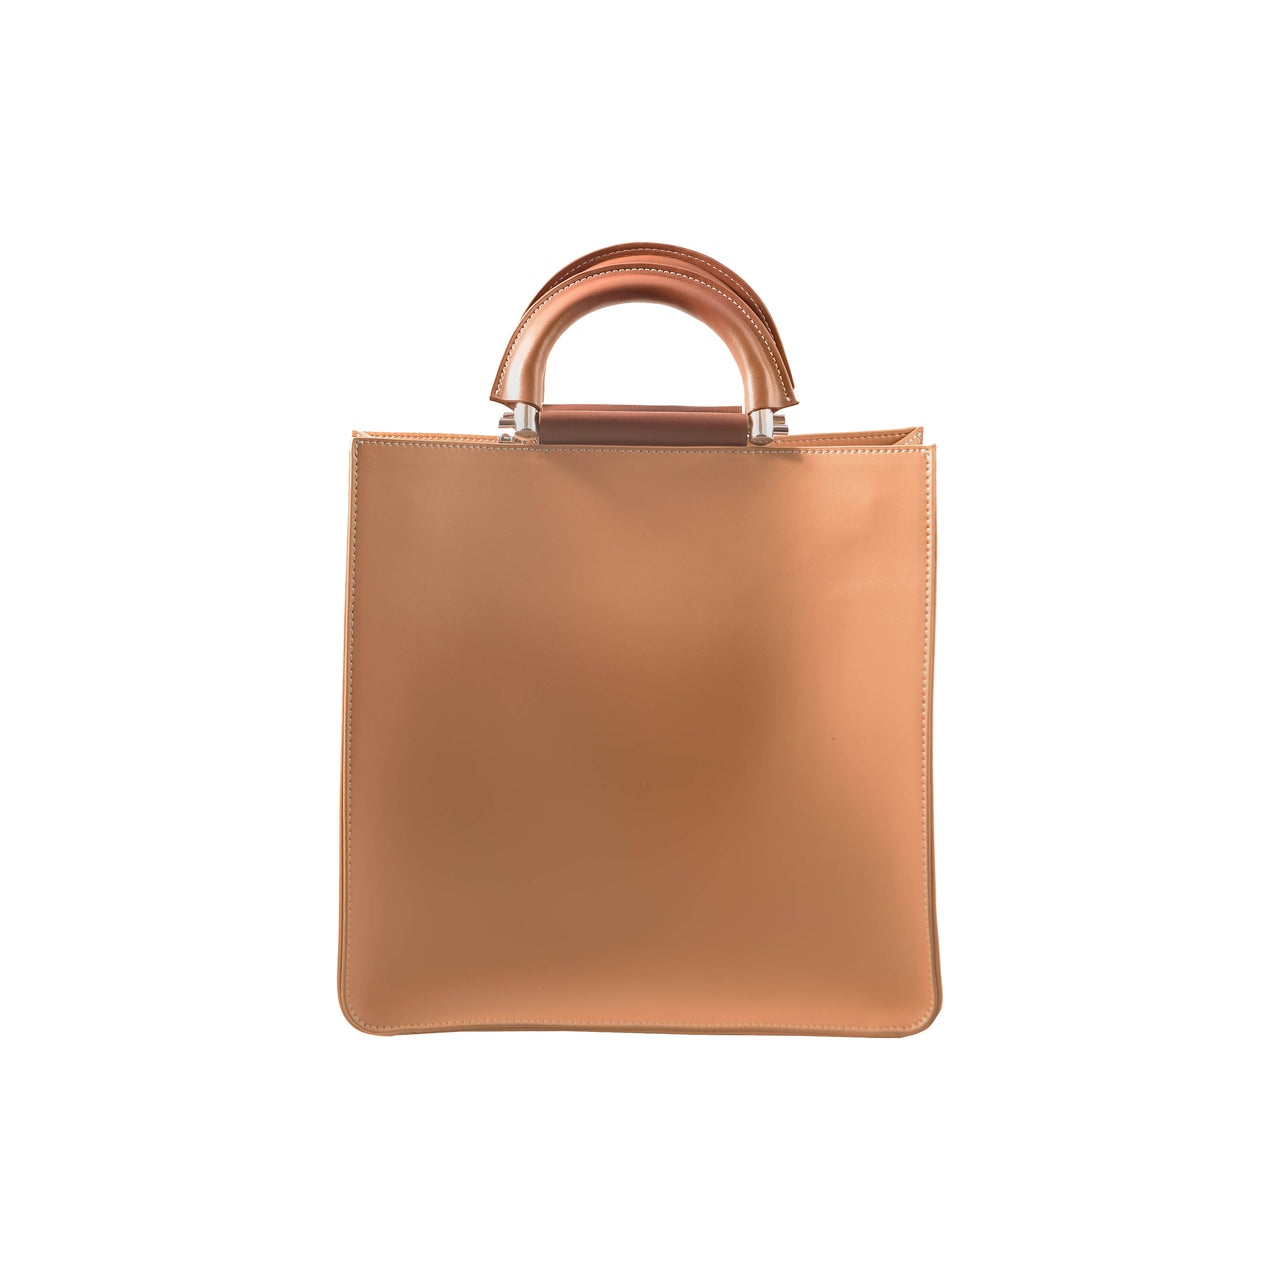 DYLAN Leather Handbag - Sand - Jeanne Lottie Handbags Canada